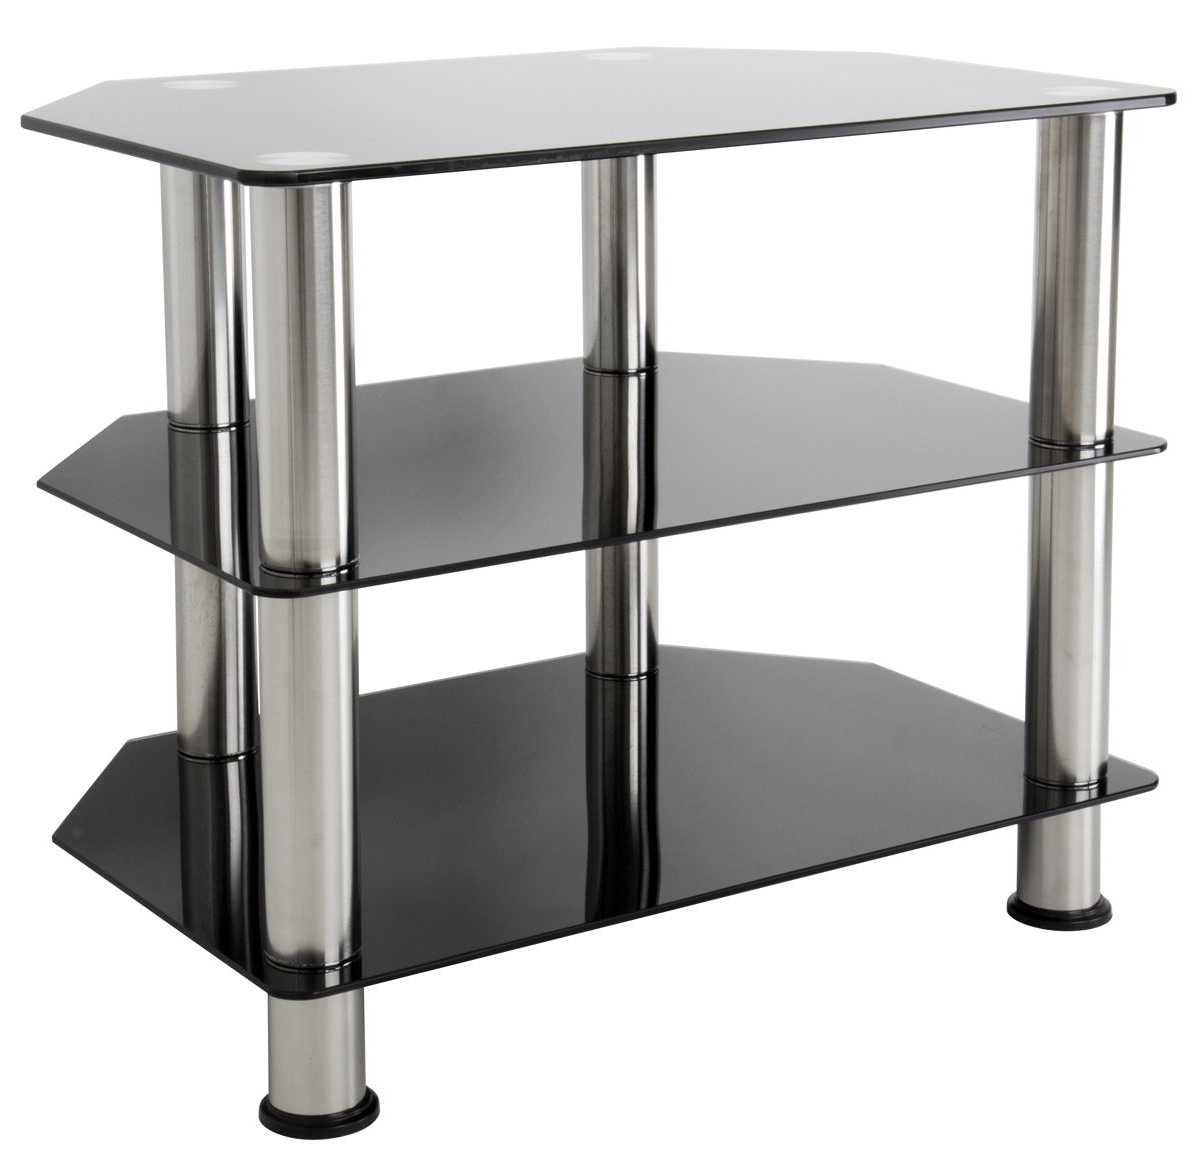 Black Glass Tv Stands Inside Preferred Avf Sdc600 Tv Stands (View 8 of 20)